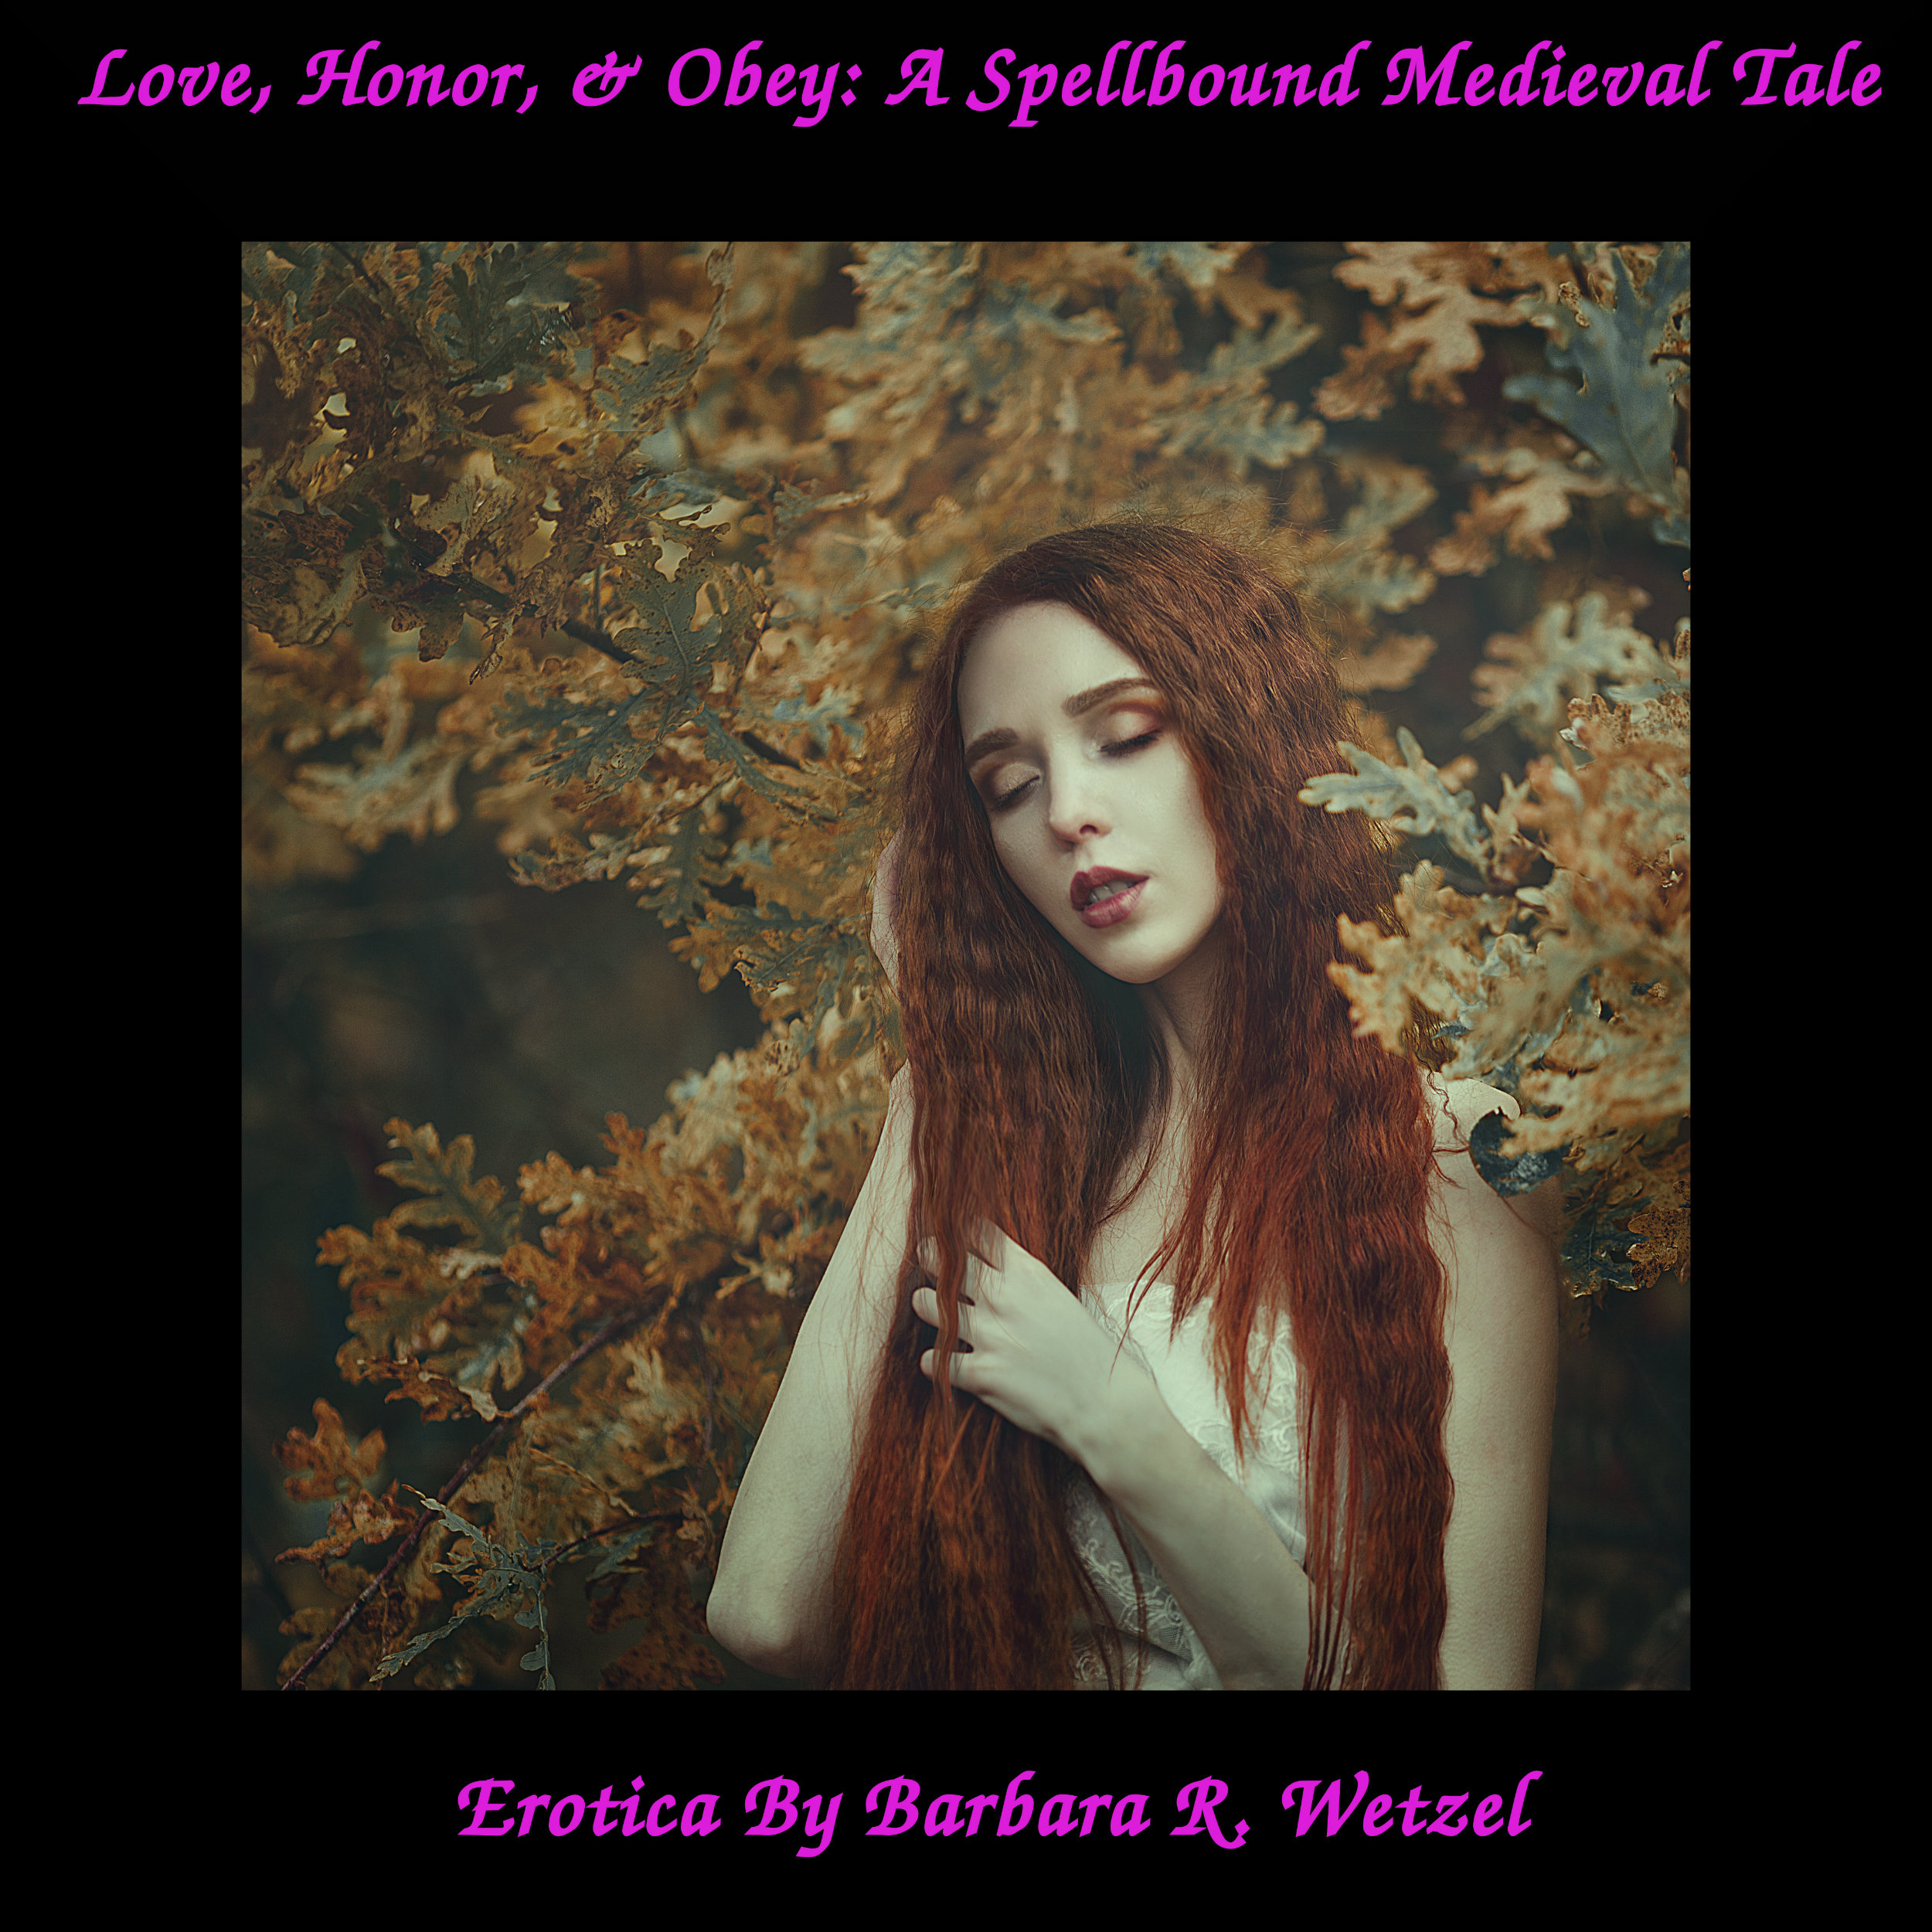 Love, Honor, & Obey: A Spellbound Medieval Tale